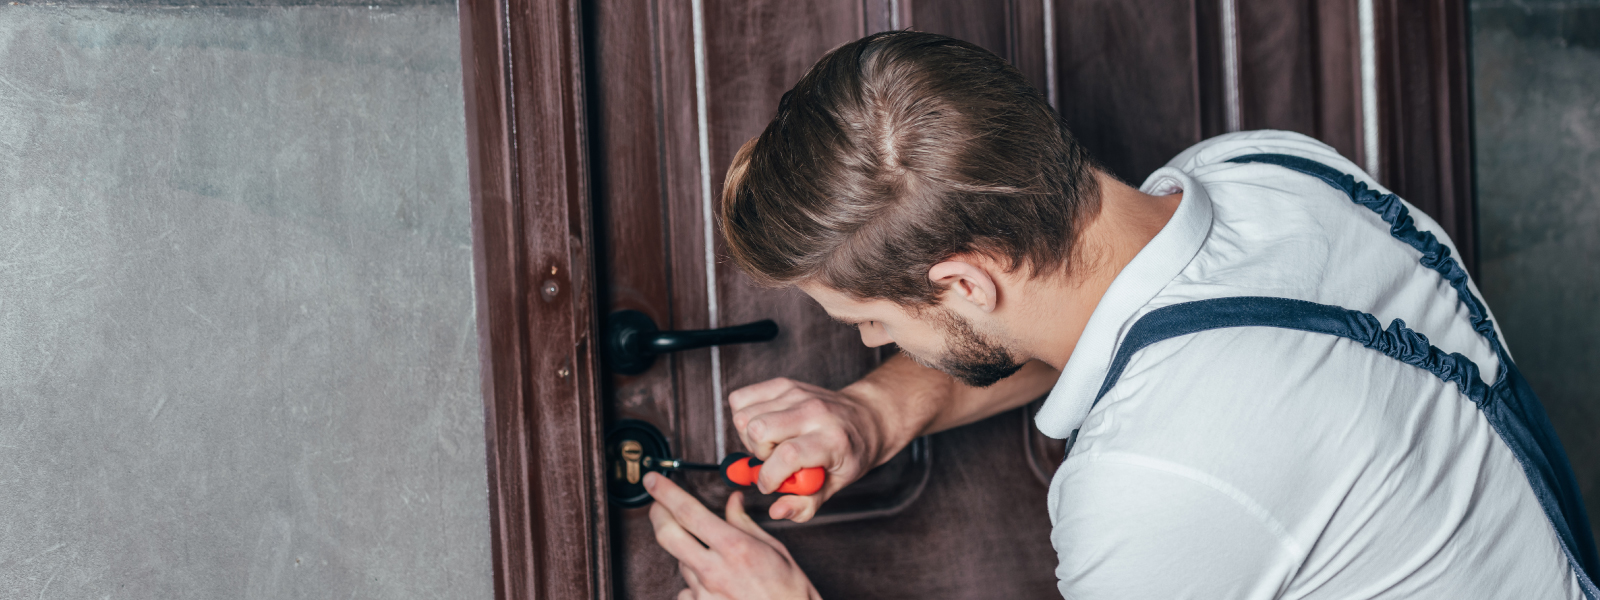 How to avoid getting locked out of your house